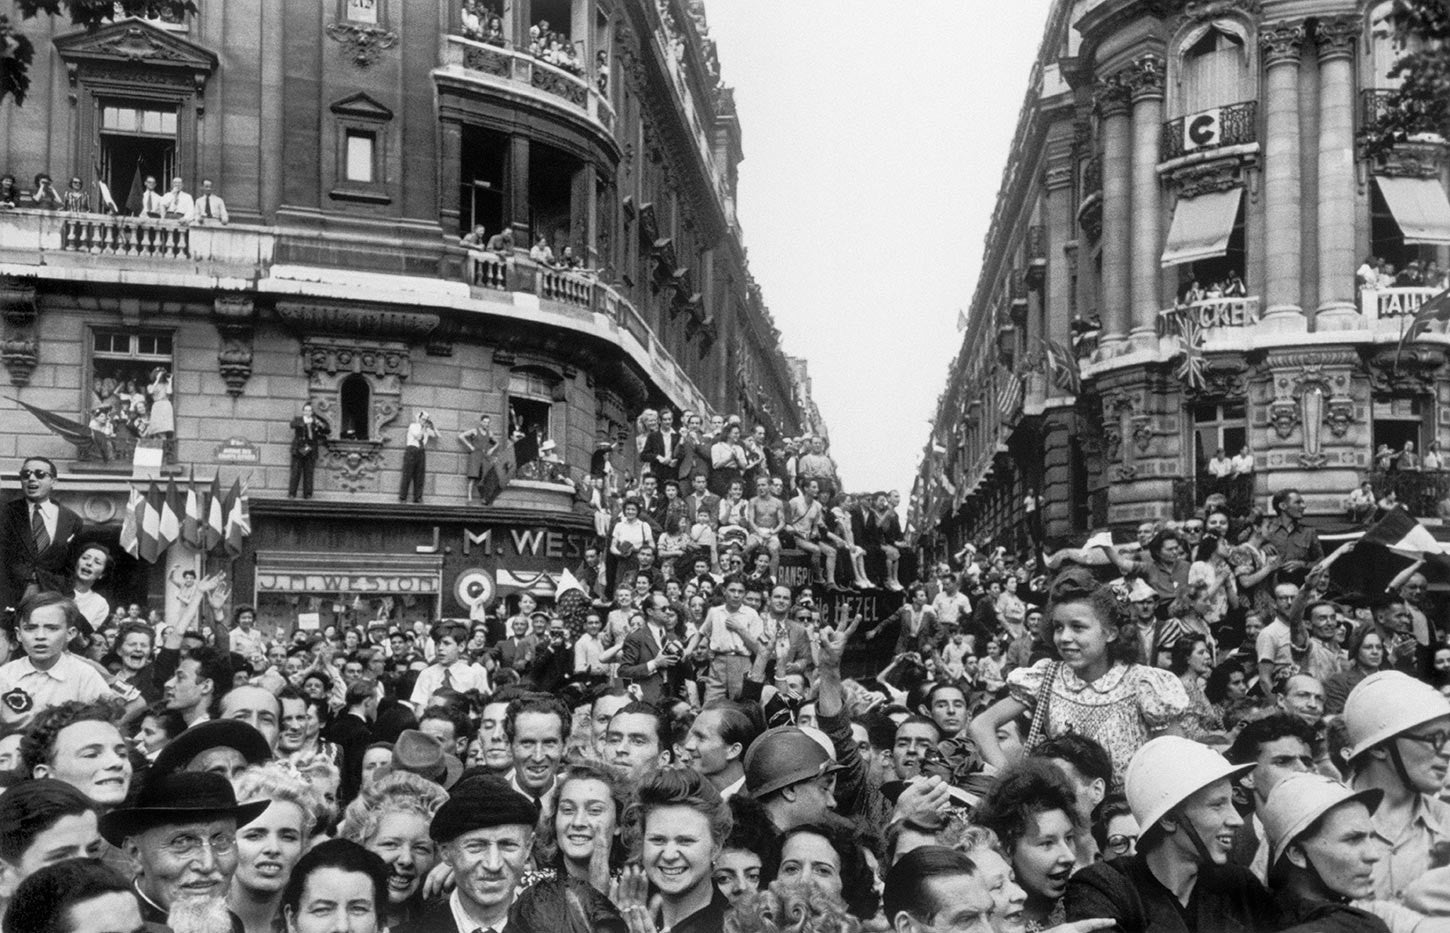 Crowds celebrating the liberation of Paris. France. August 25th, 1944.